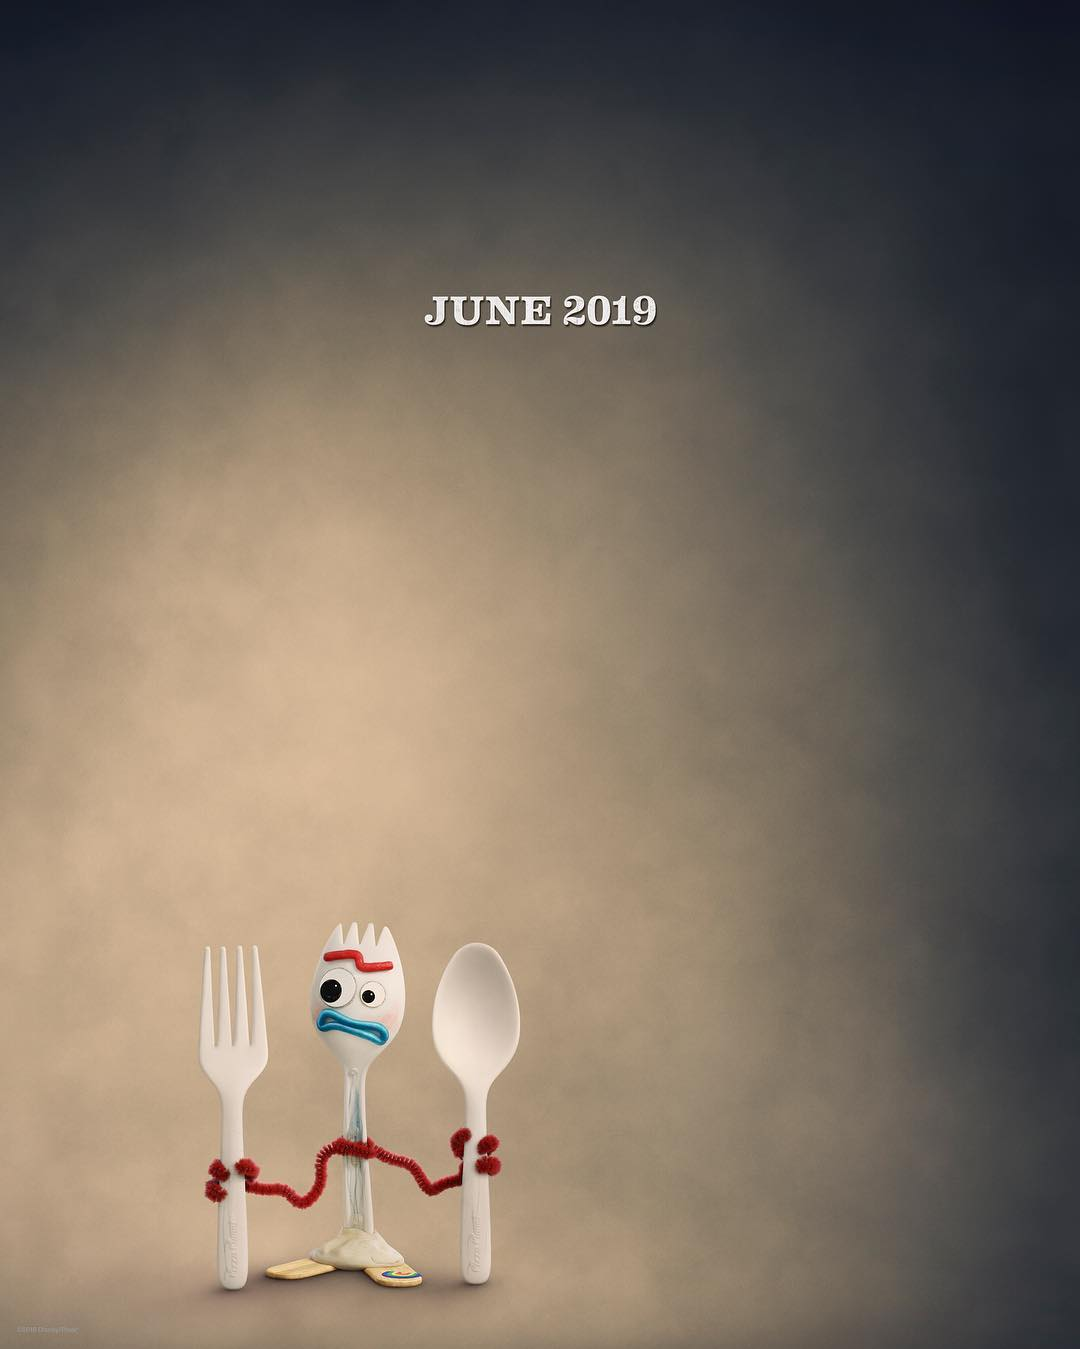 Forky is a toy that Bonnie made our of a fork, but he has no interest in being a toy. (Instagram)